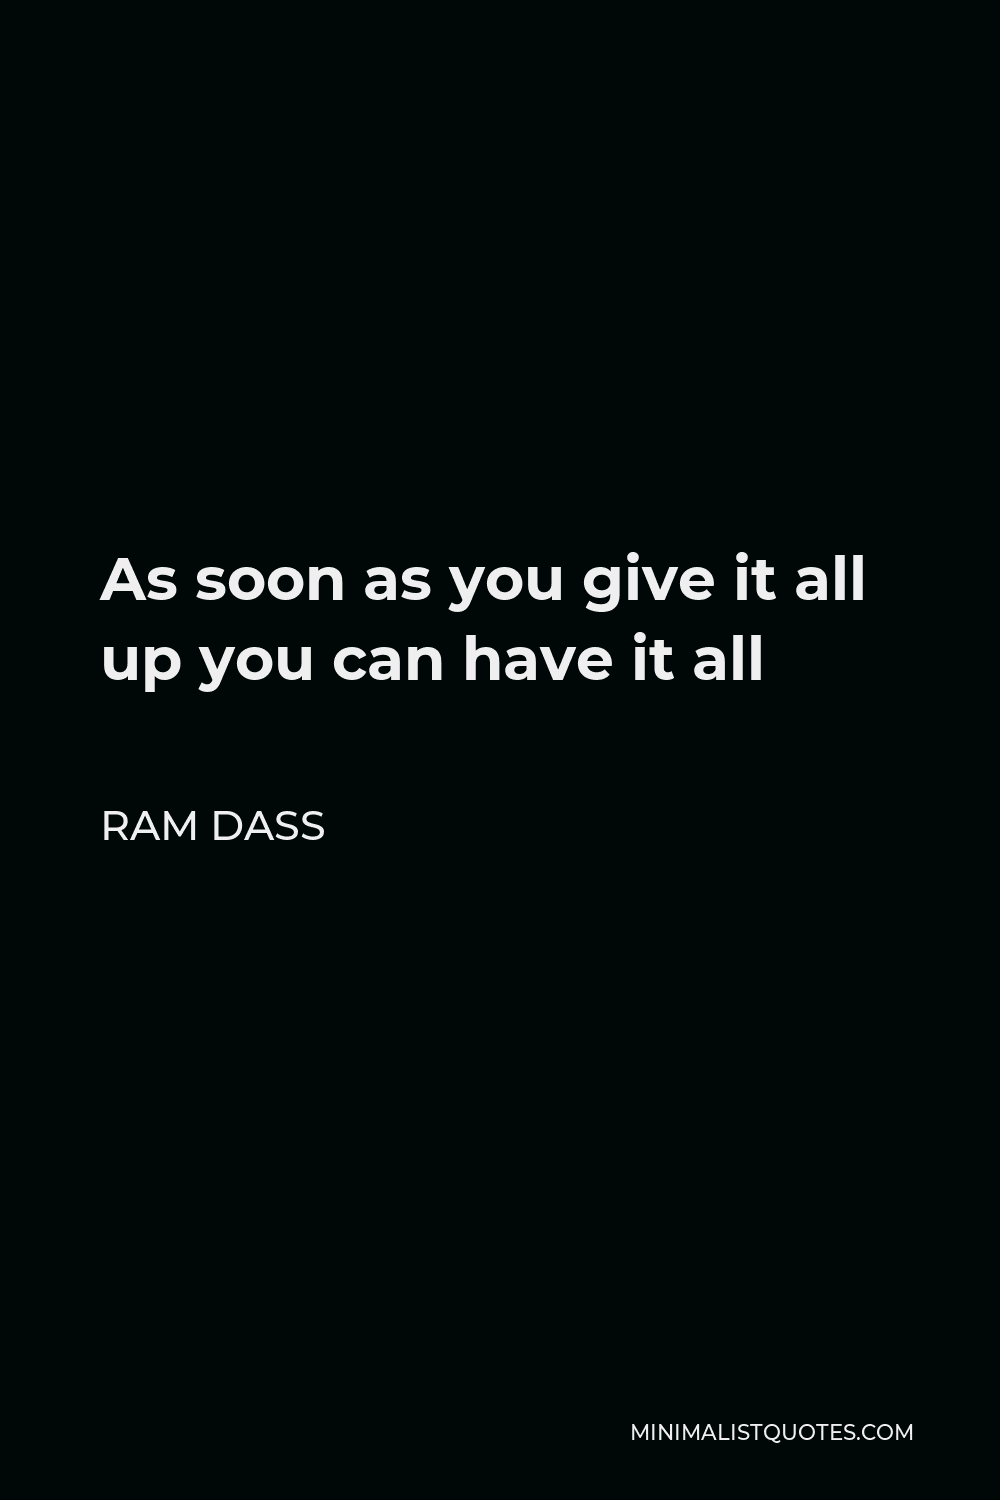 Ram Dass Quote - As soon as you give it all up you can have it all